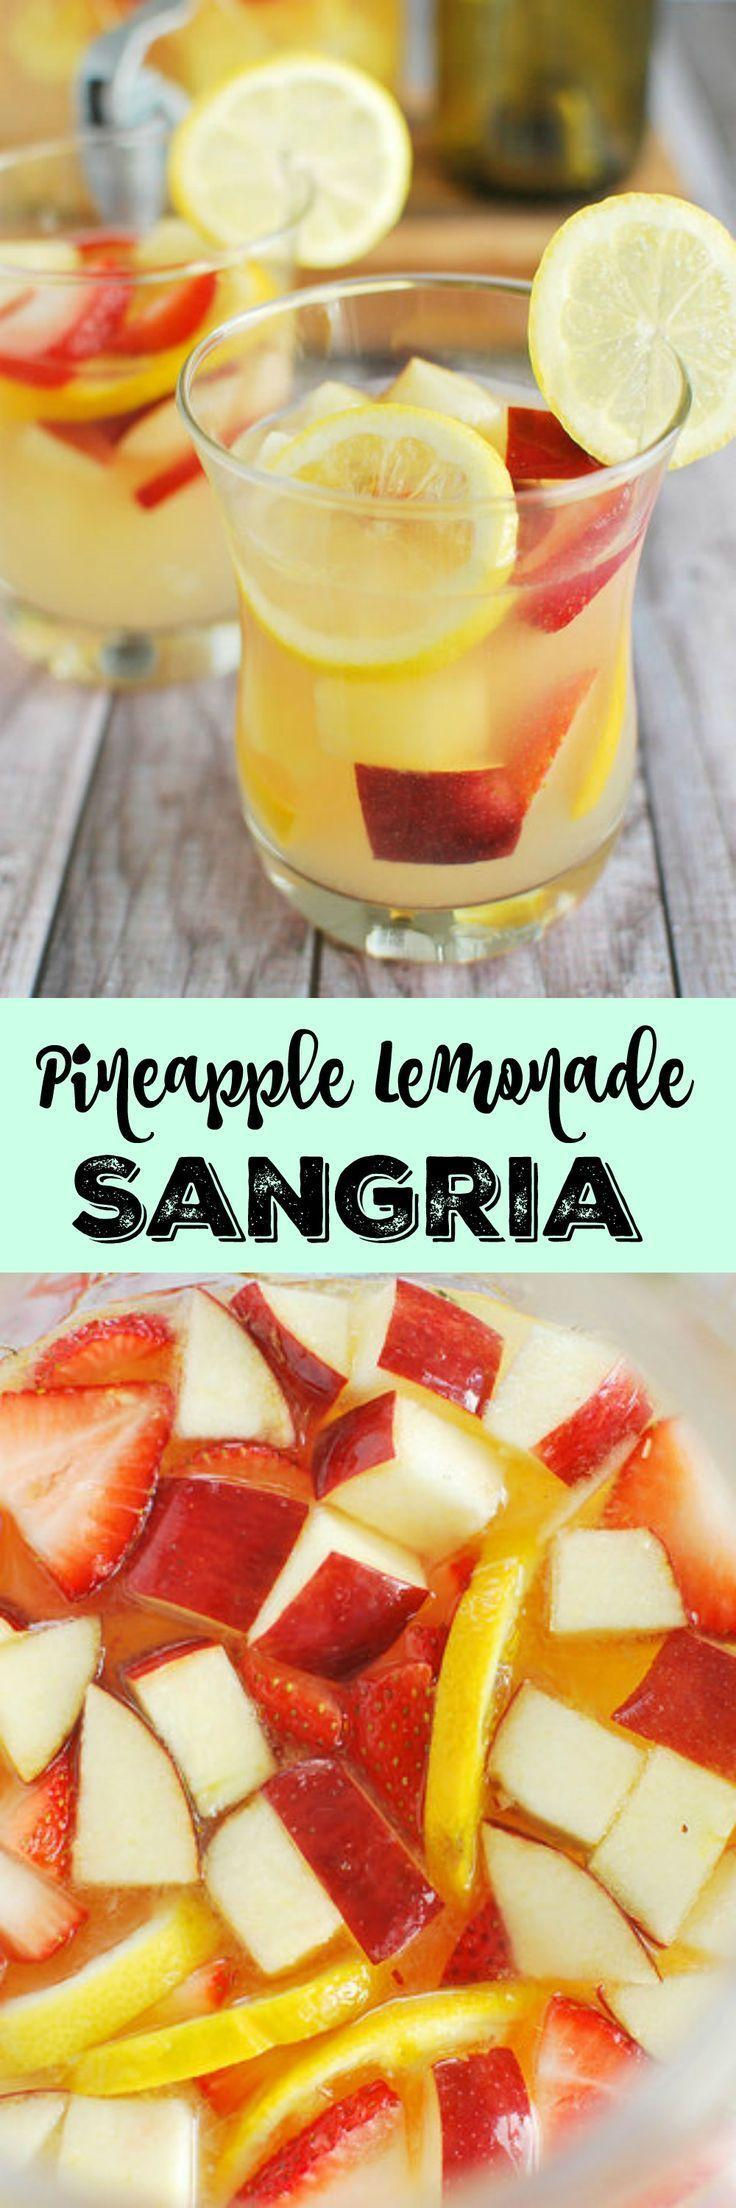 Hochzeit - Pineapple Lemonade Sangria ~ The Ultimate Summer Drink Recipe...white Wine, Lemonade, And Rum With Tons Of Fresh Fruit Mixed In!